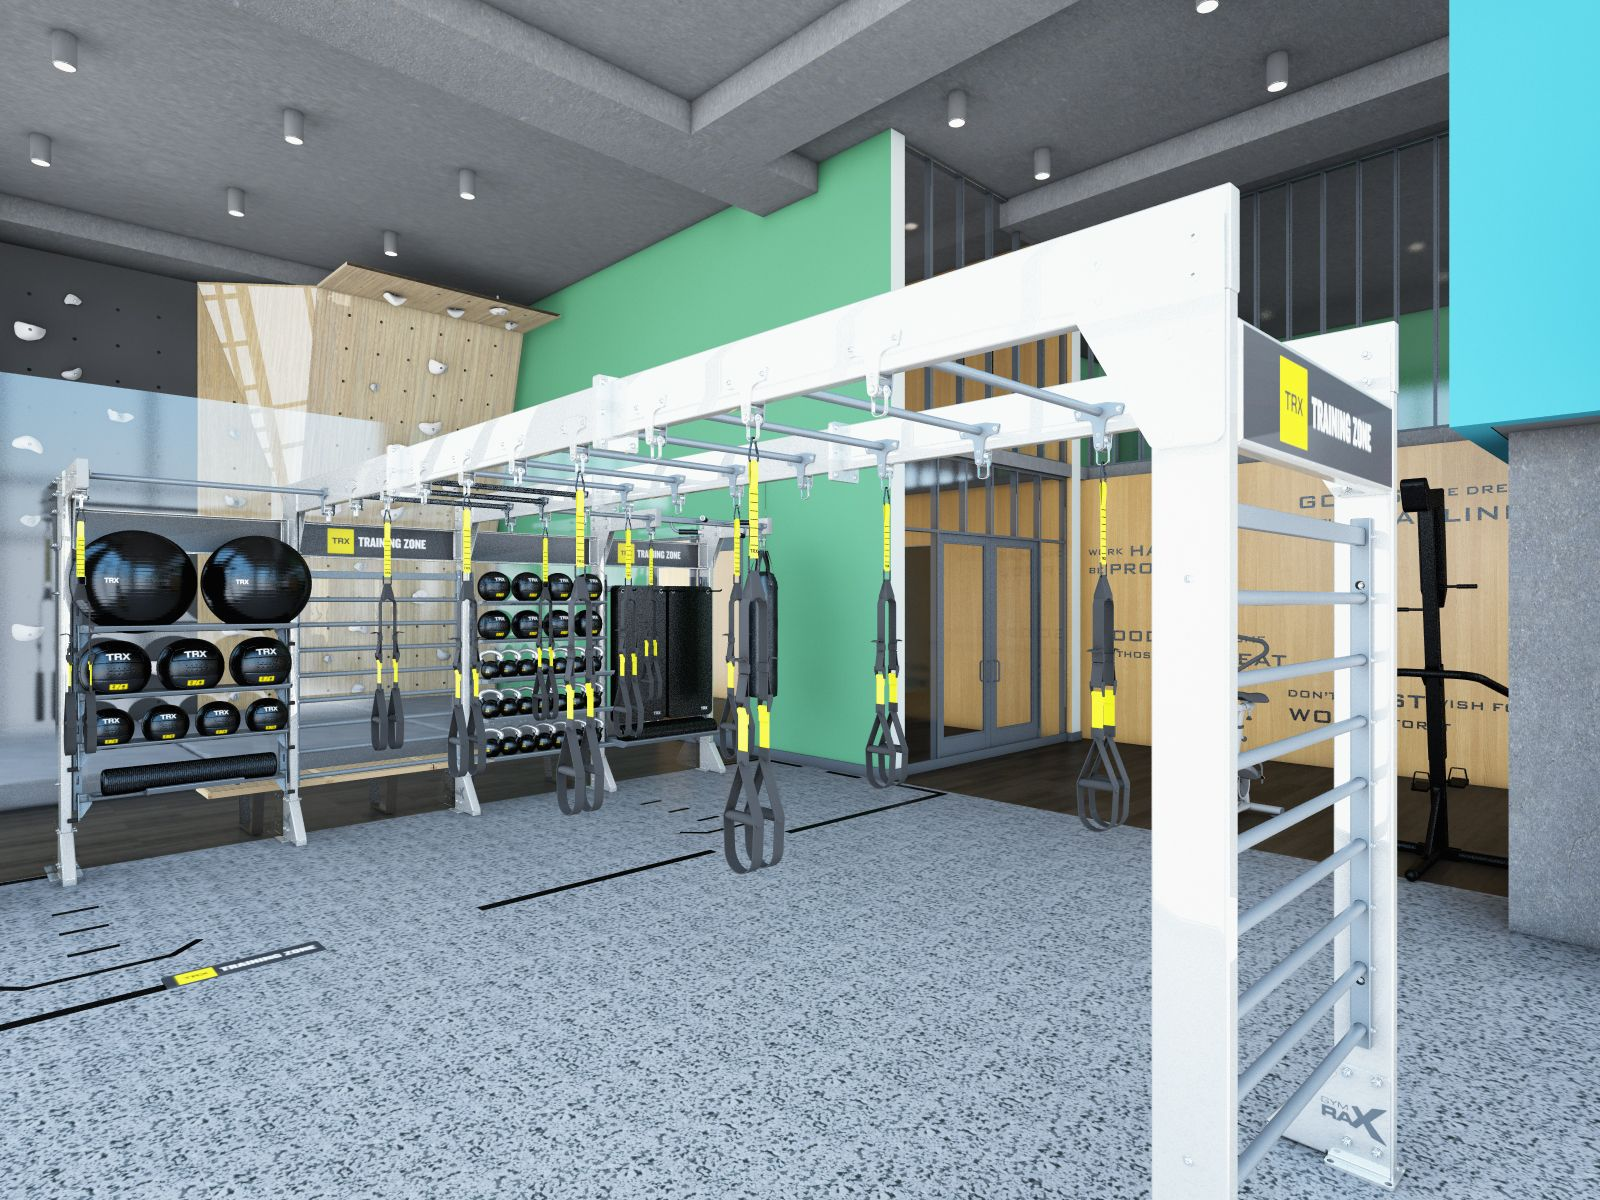 Gym Rax Bridge Suspension Trx Zone